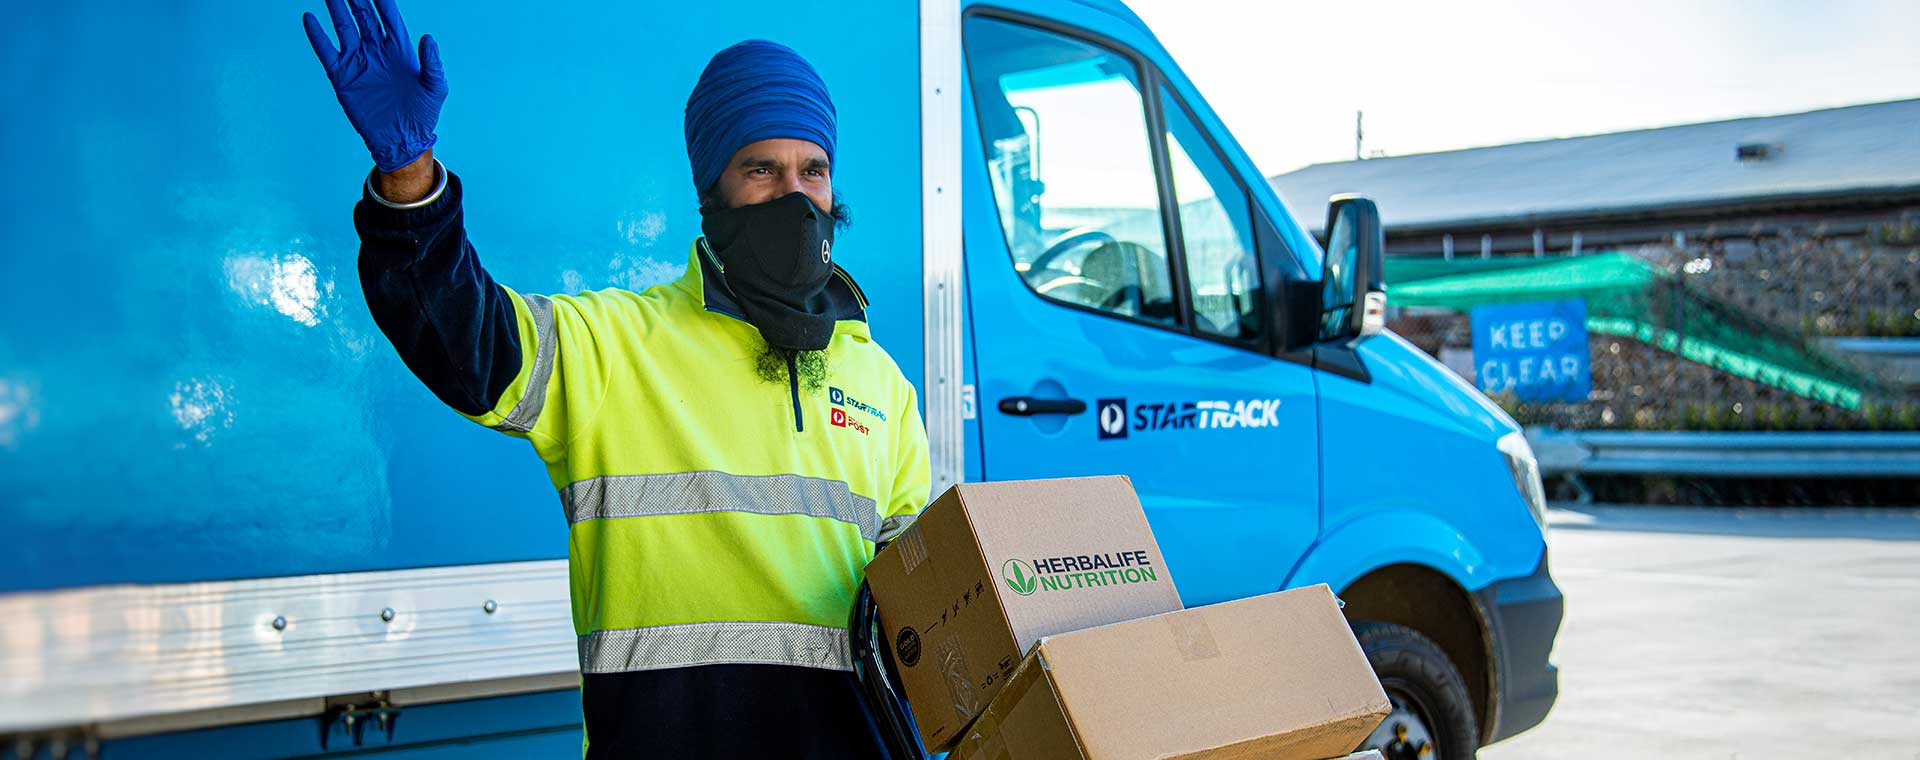 Delivery man wearing a mask